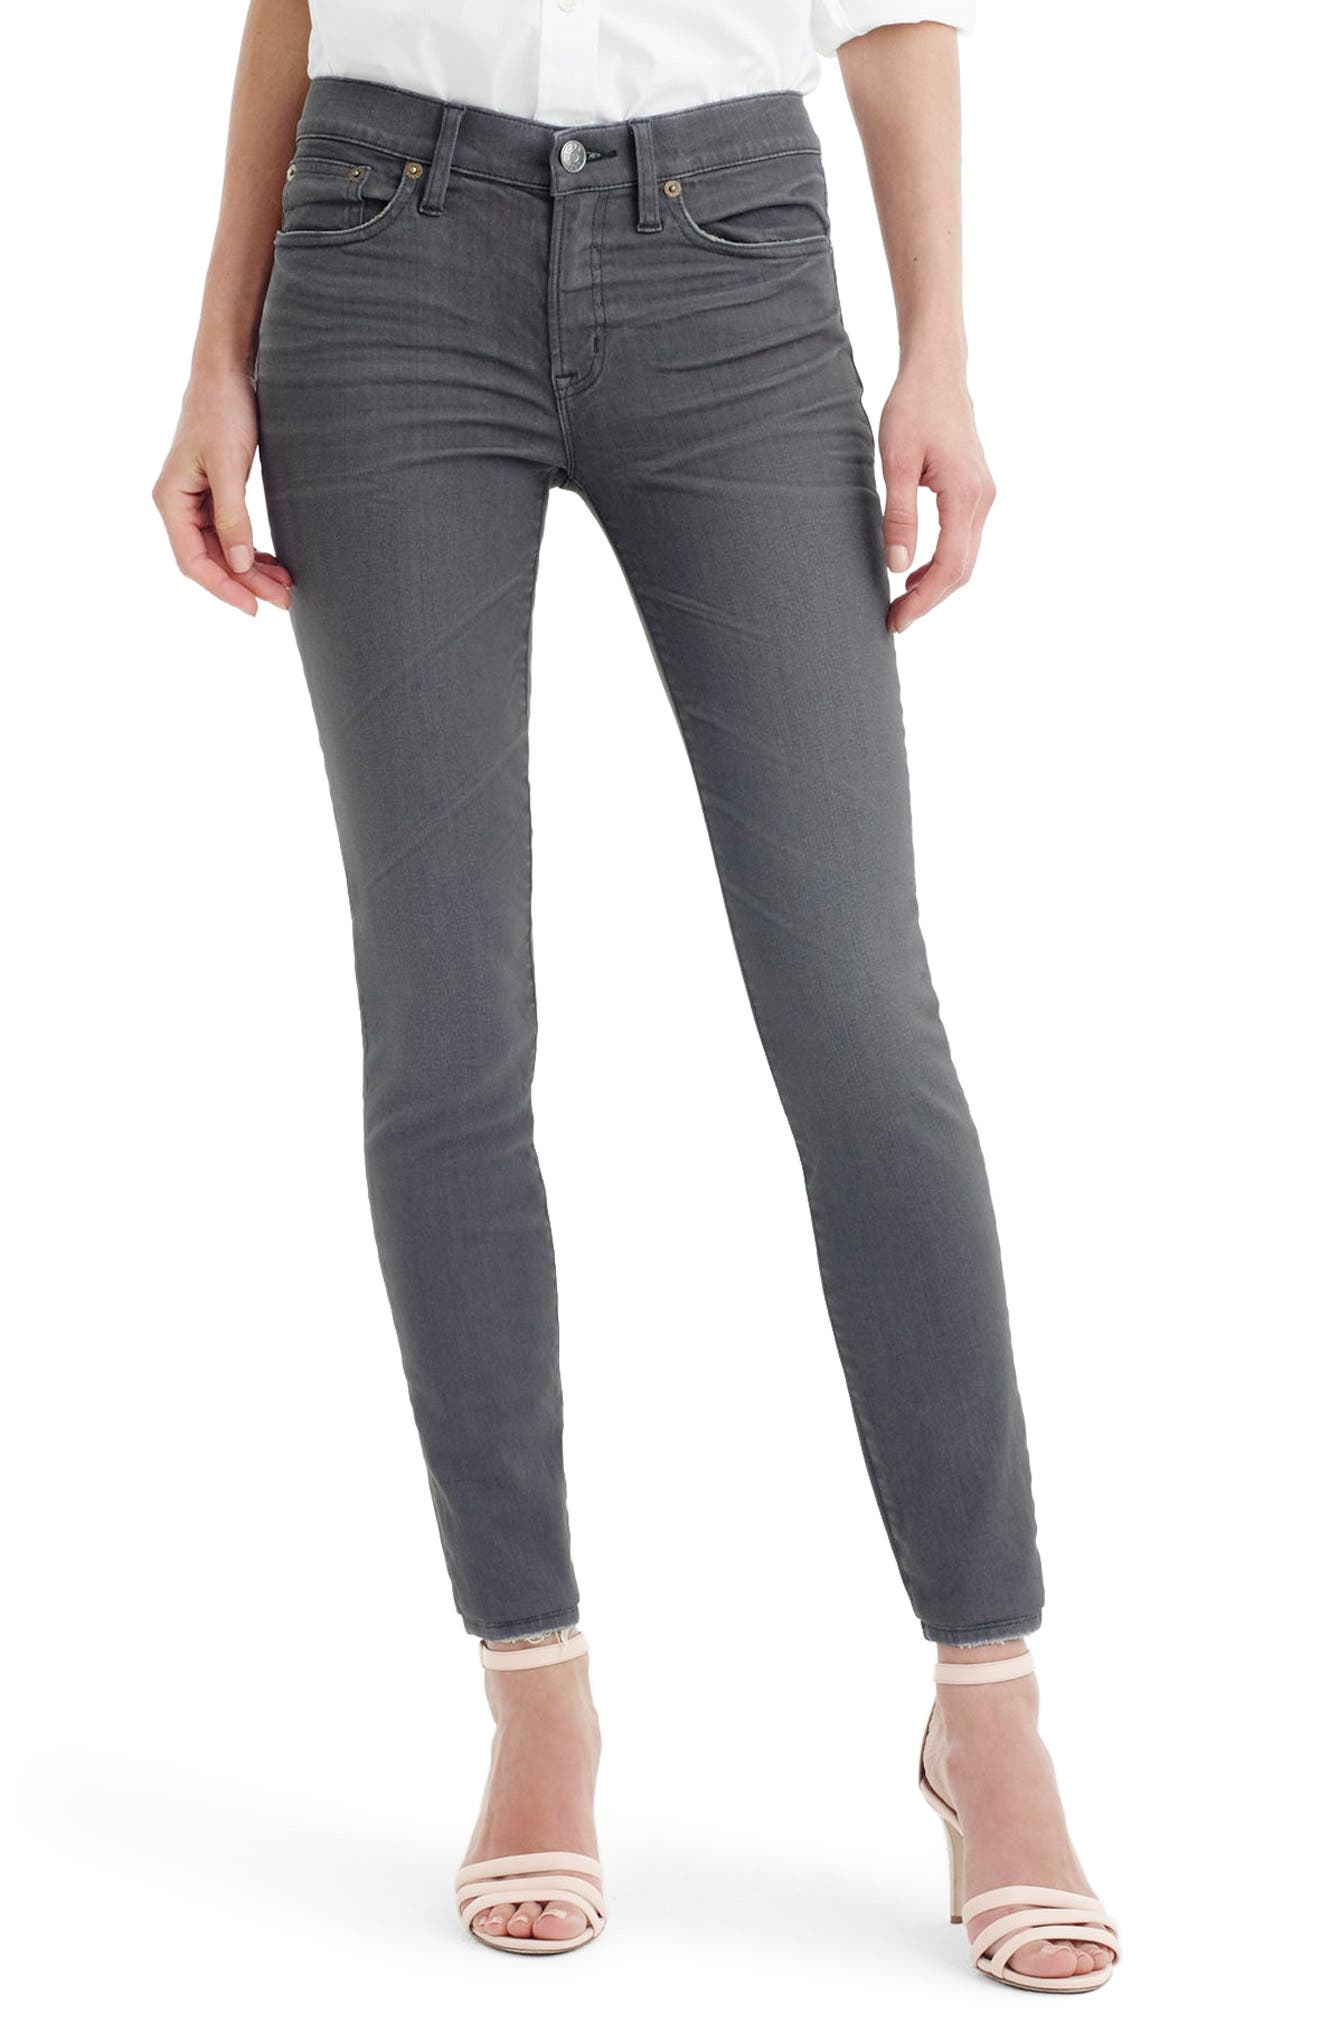 Toothpick Jeans,                             Main thumbnail 1, color,                             020